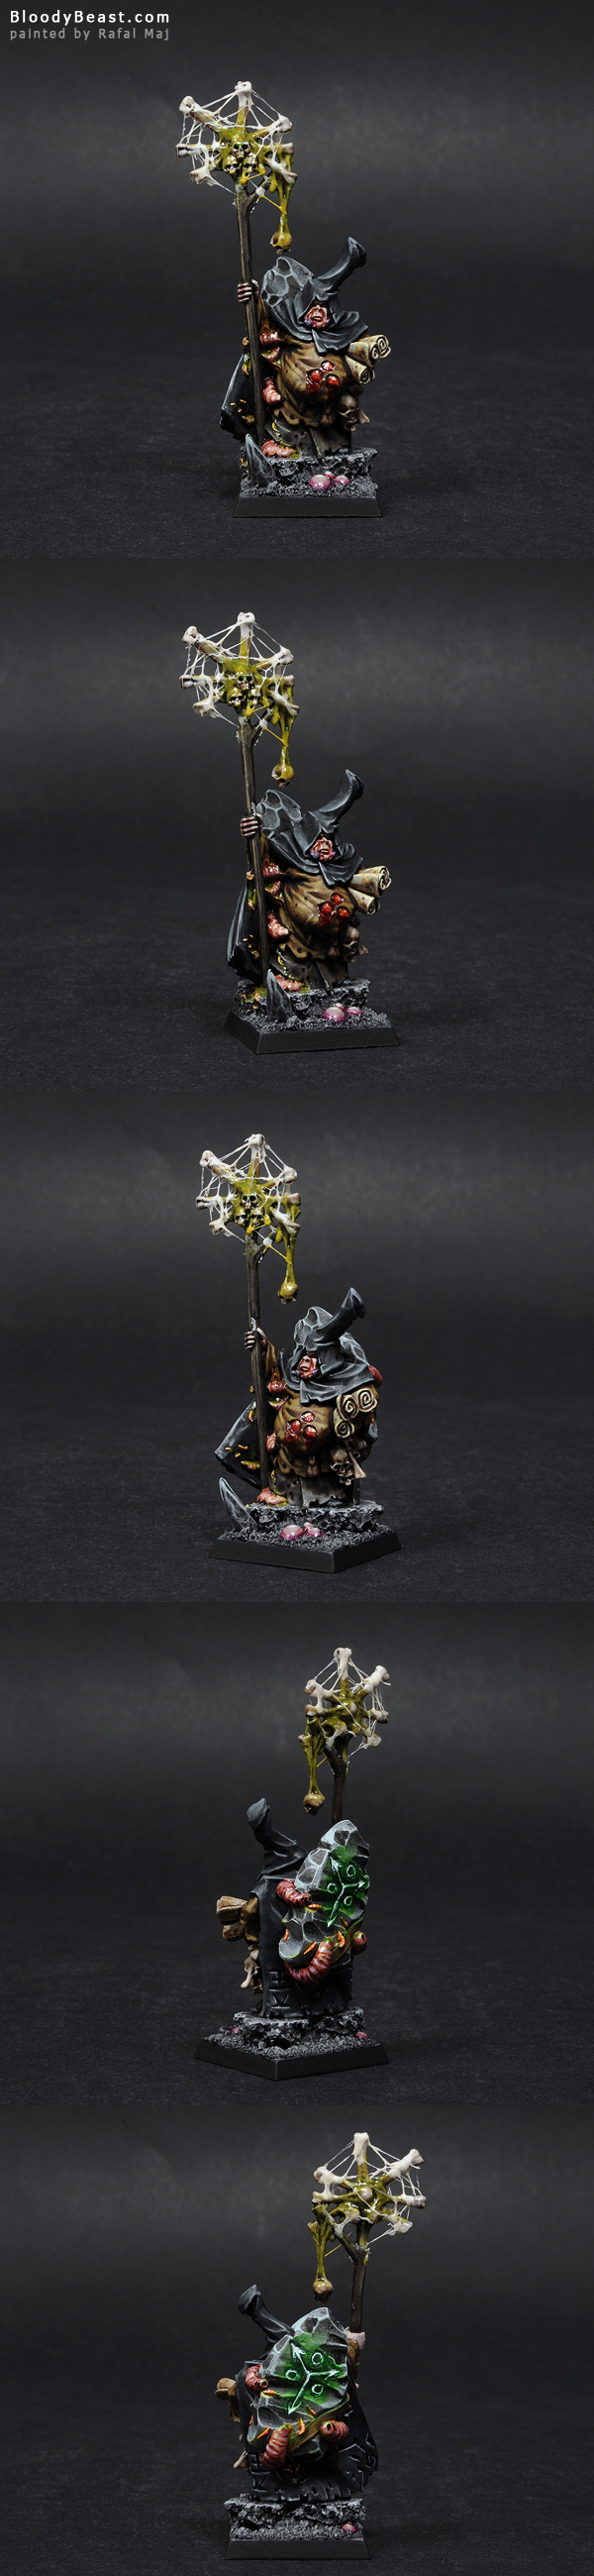 Nurgle Sorcerer painted by Rafal Maj (BloodyBeast.com)